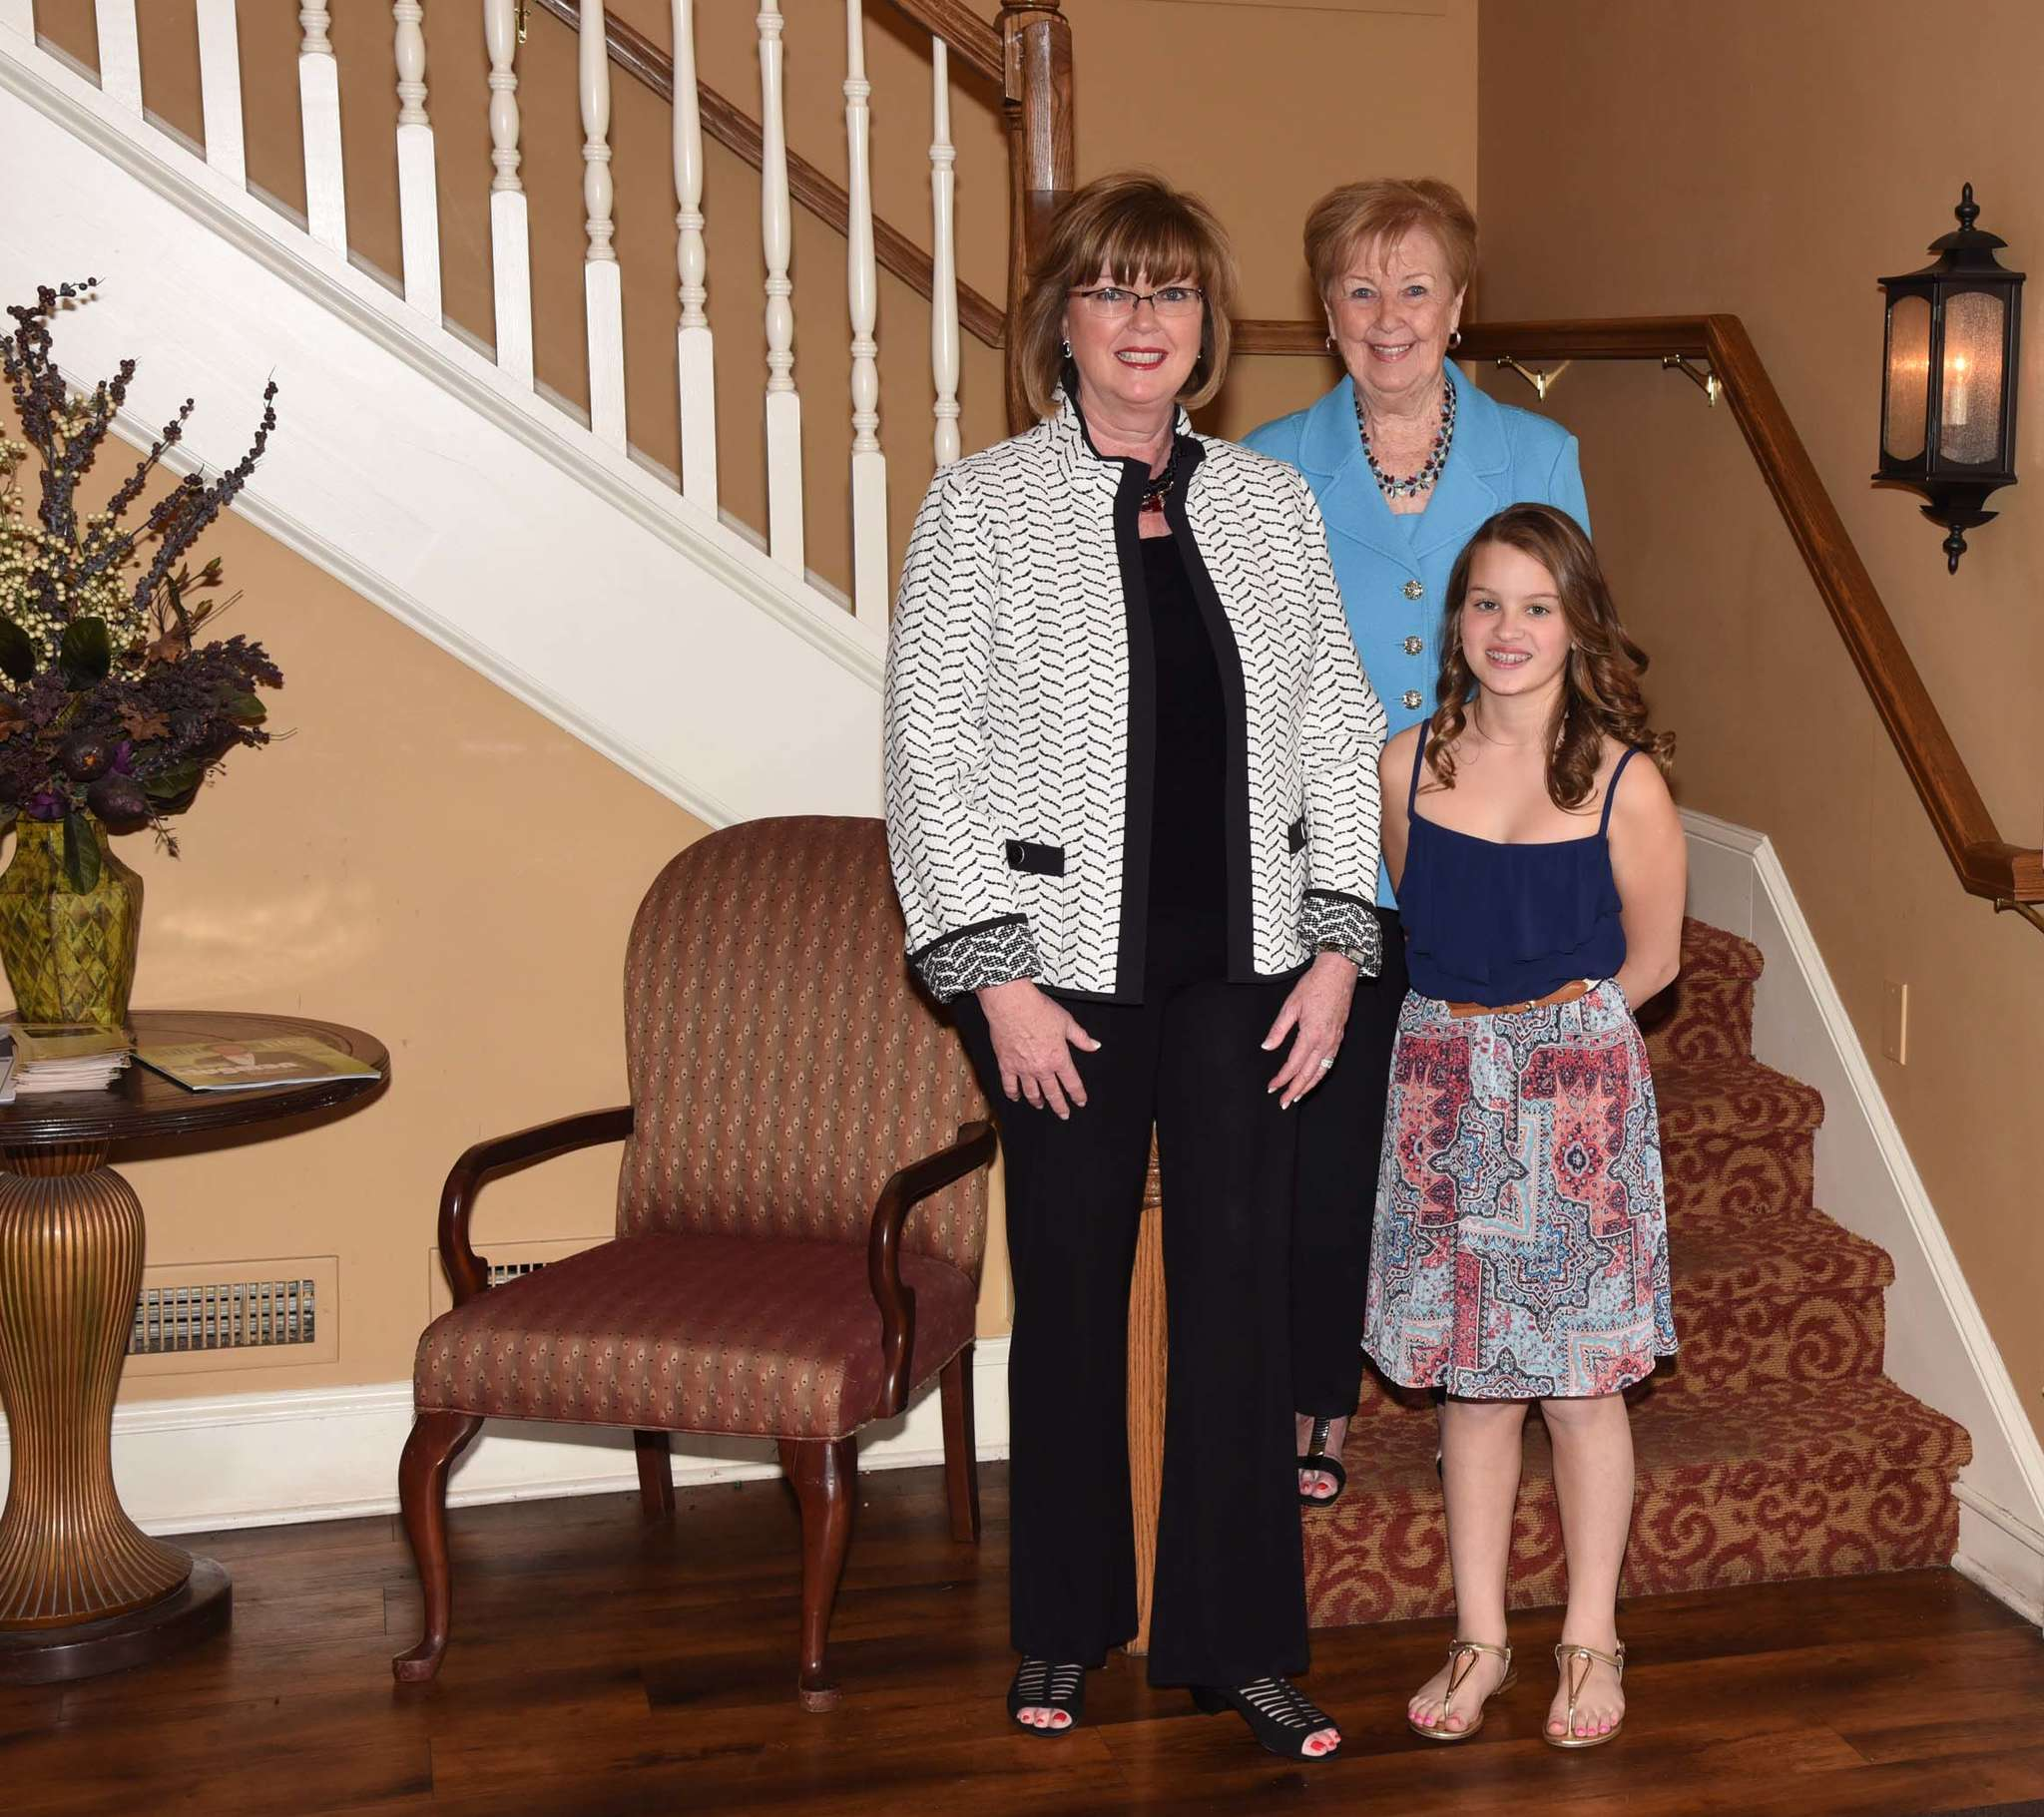 Eileen McDonnell is part of a growing trend of multigenerational households. She lives with her mother, Barbara, and daughter, Claire, with other family nearby.